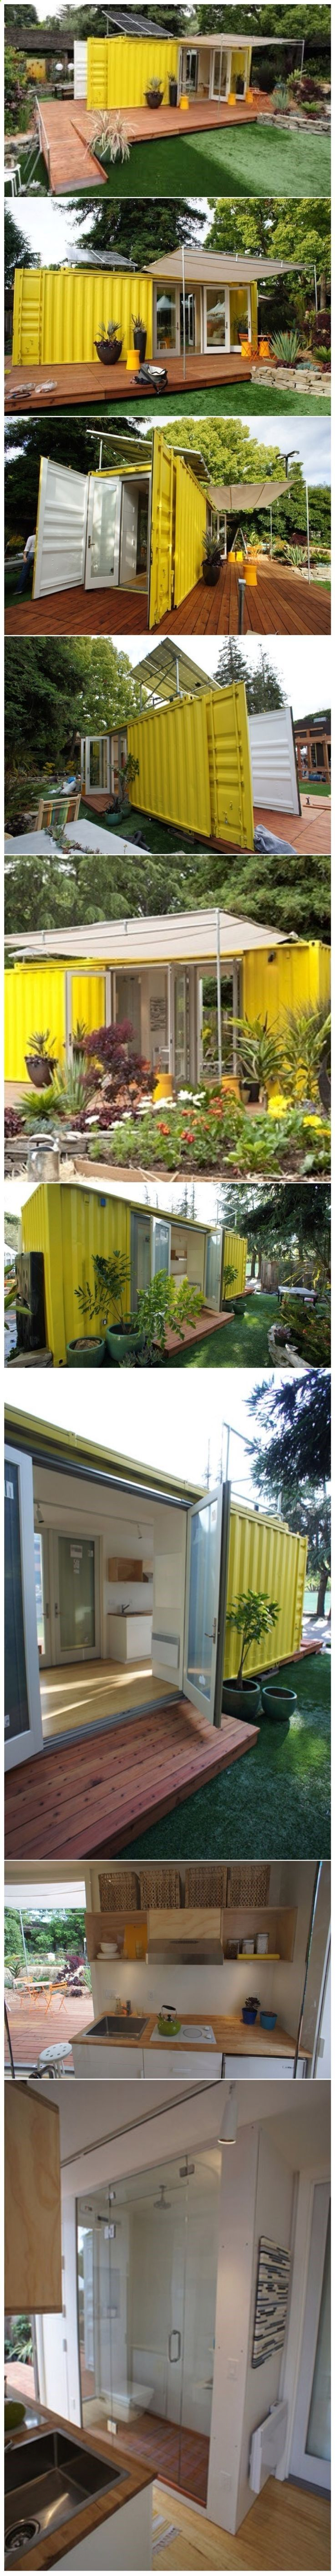 """Container House - via www.cargotecture.com This little shipping container house called """"The Nomad"""" was designed for Sunset Magazine by Seattle-Based HyBrid Architecture. The home's shell is a used 24 foot shipping container that provides 192 sq. ft. of interior living space and can sleep four people. The house has a galley kitchen, a bathroom and several exterior openings. ~ Great pin! For Oahu architectural design visit ownerbuiltdesign.com - Who Else Wants Simple Step-By-Step Plans T..."""